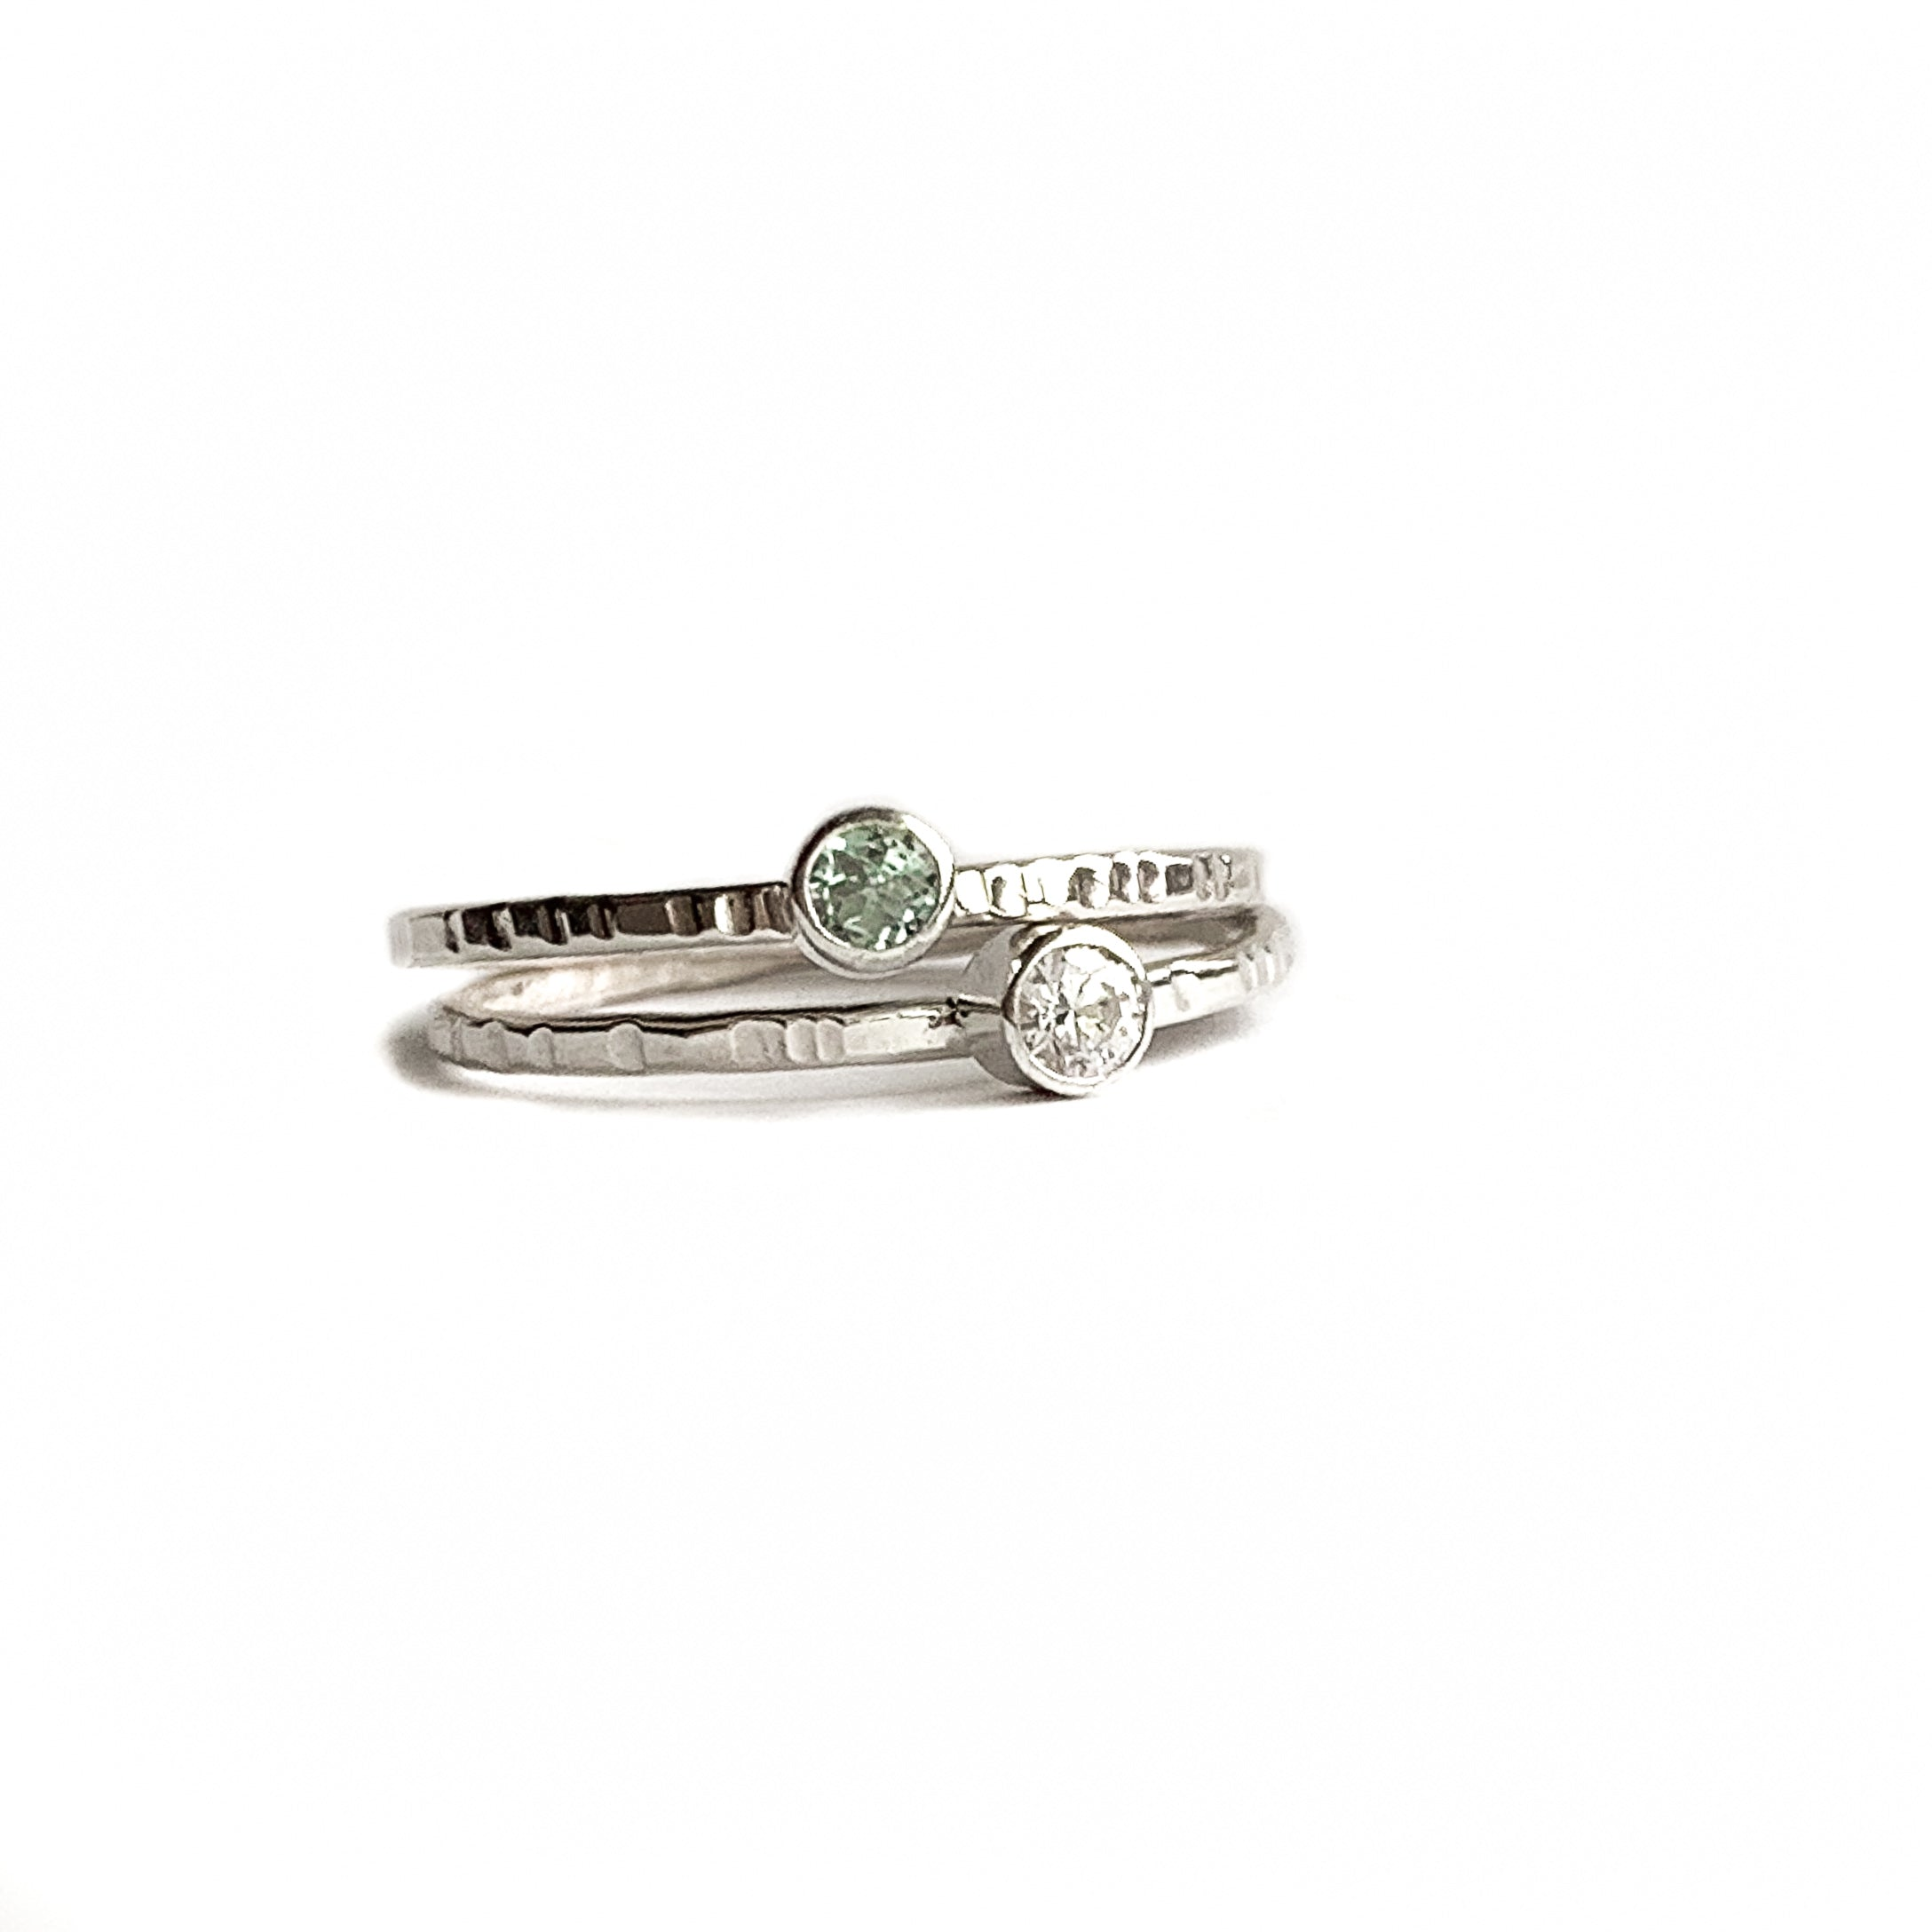 2 Gemstone rings - Silver